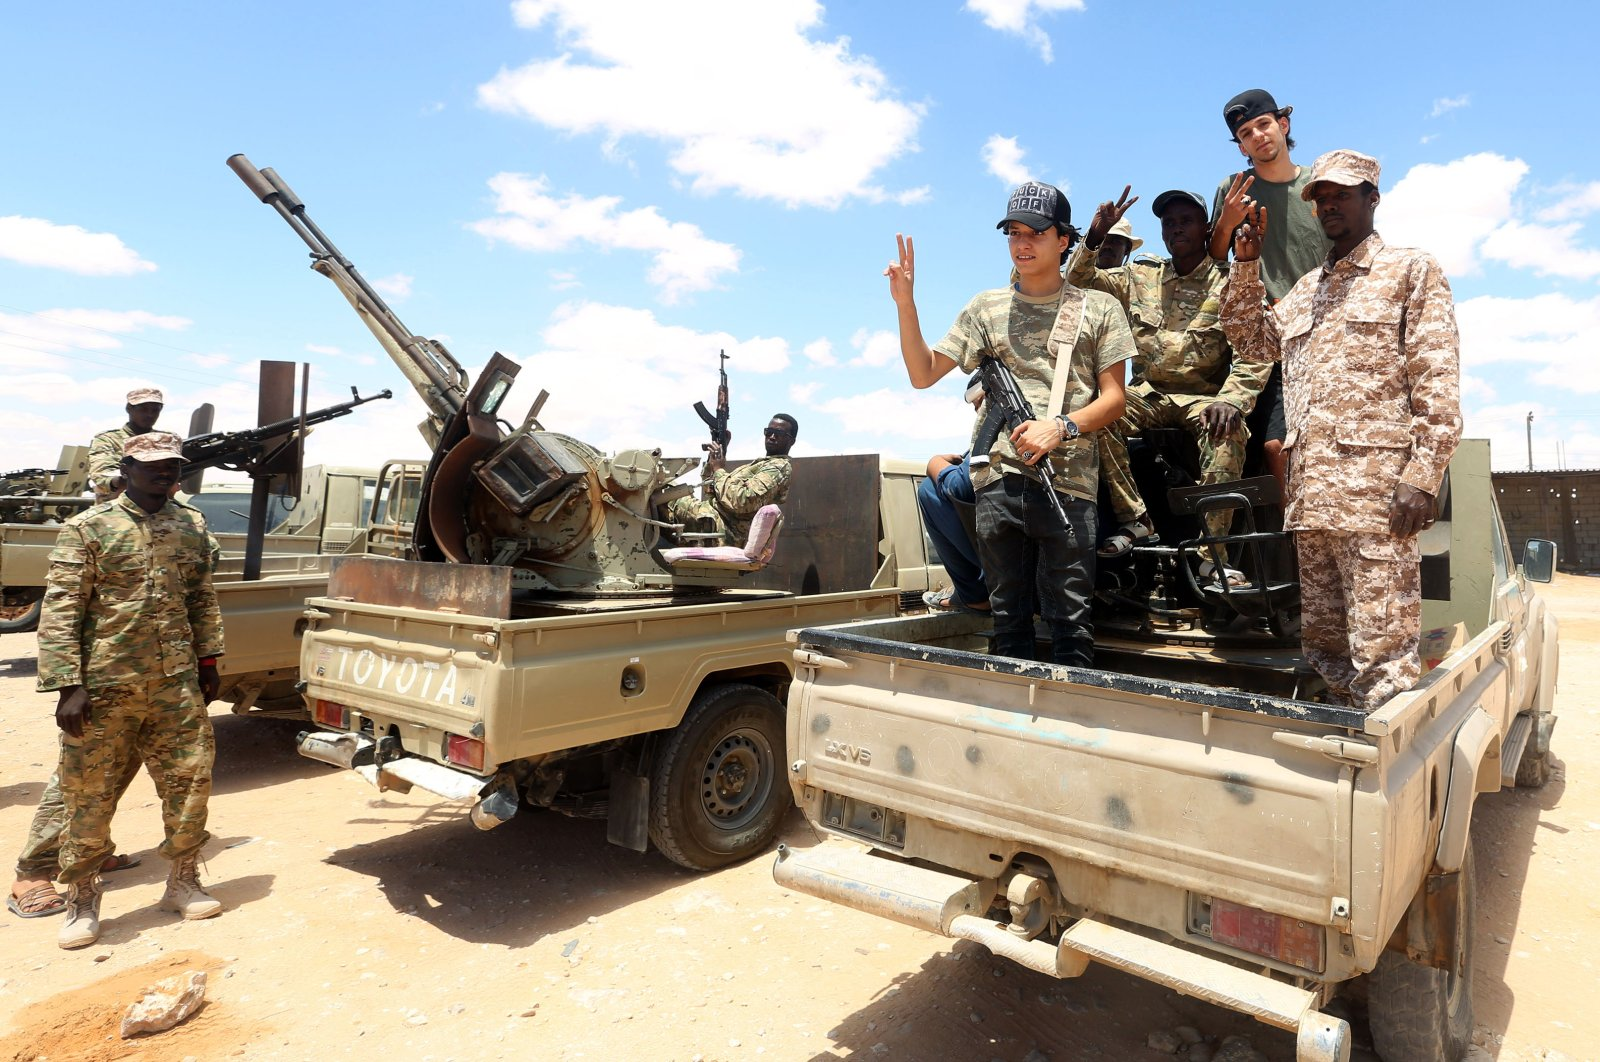 Fighters loyal to the UN-recognized Libyan Government of National Accord (GNA) secure the area of Abu Qurain, half-way between the capital Tripoli and Libya's second city Benghazi, against forces loyal to Khalifa Haftar, who is based in eastern Benghazi, July 20, 2020. (AFP Photo)